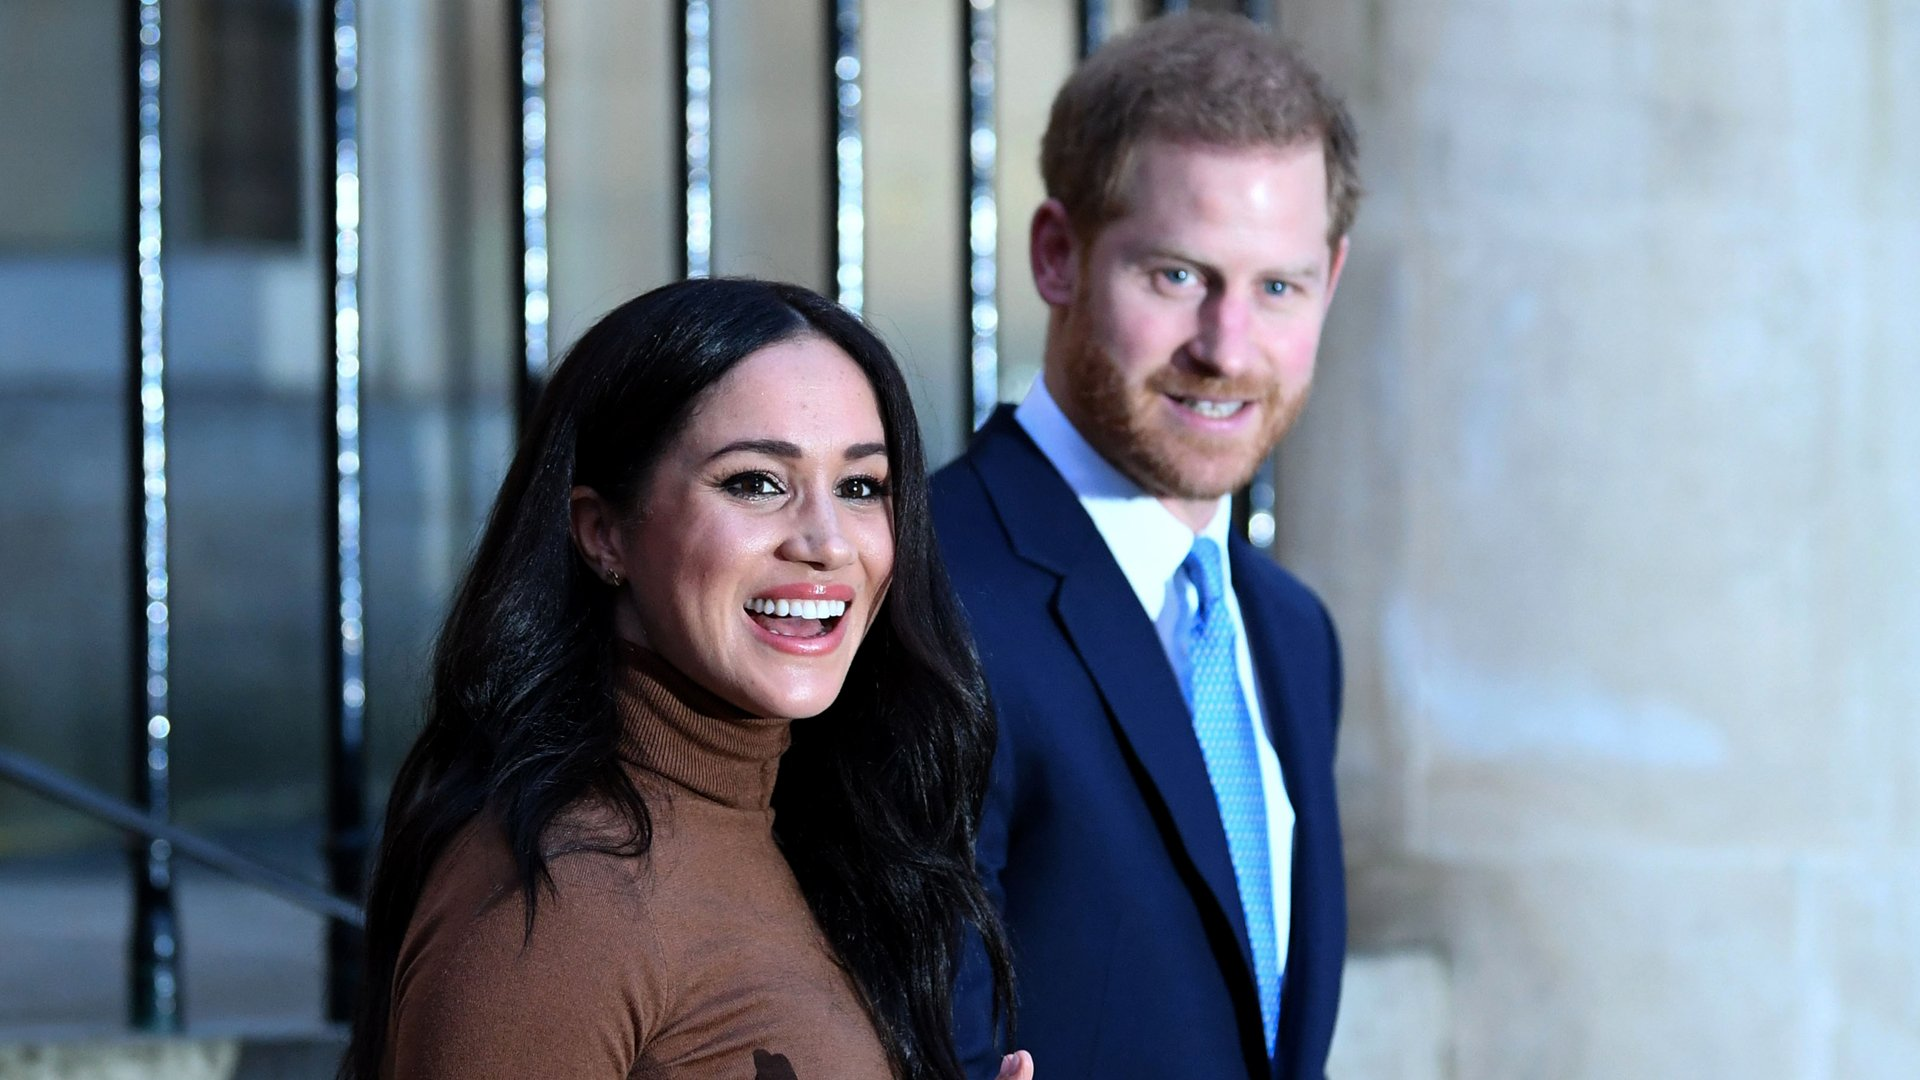 Prince Harry, Duke of Sussex and Meghan, Duchess of Sussex react after their visit to Canada House on Jan. 7, 2020 in London. (Credit: DANIEL LEAL-OLIVAS - WPA Pool/Getty Images)